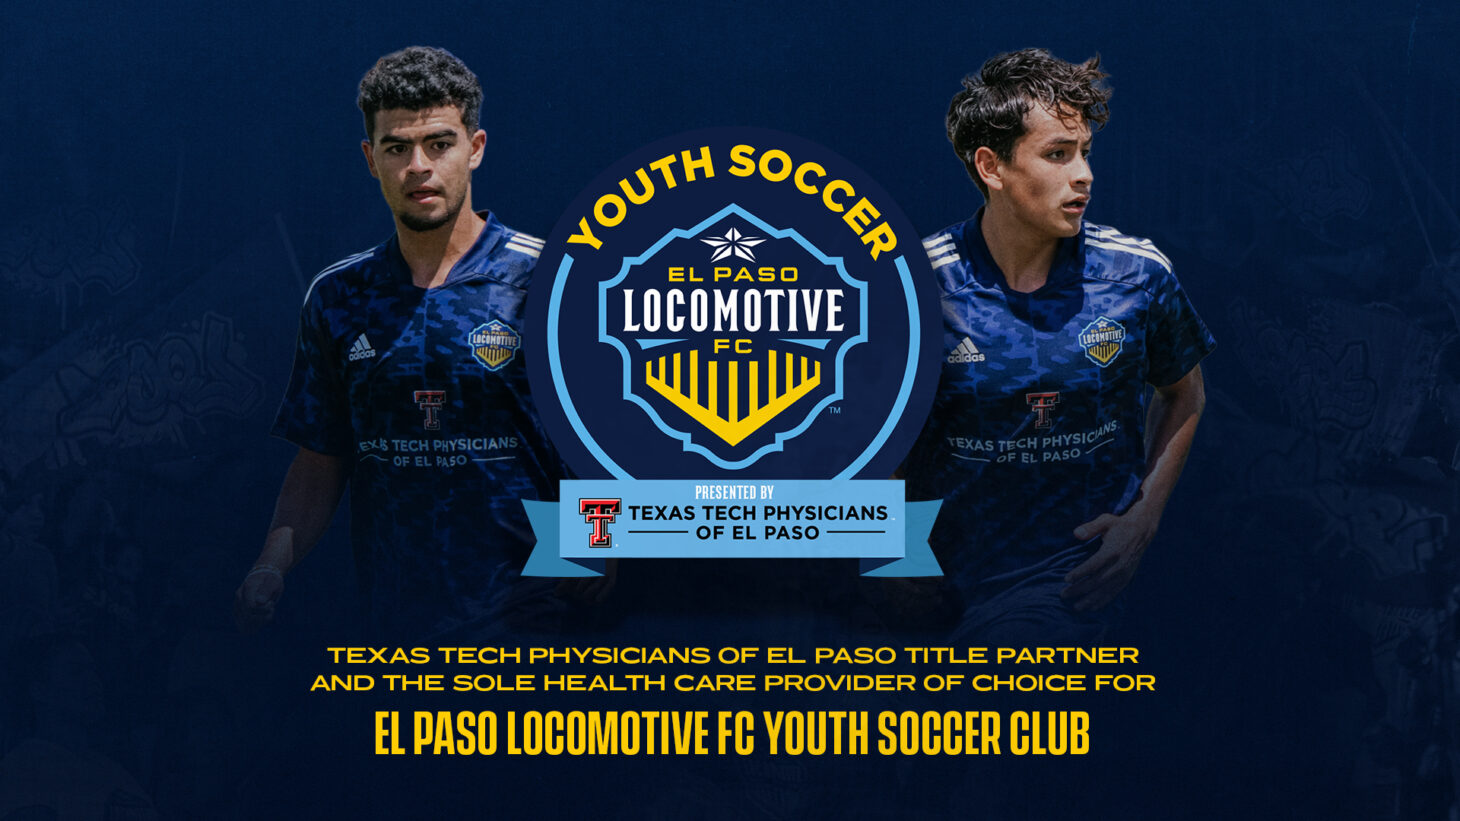 Two El Paso Locos players on either side of the logo, with their new sponsor below